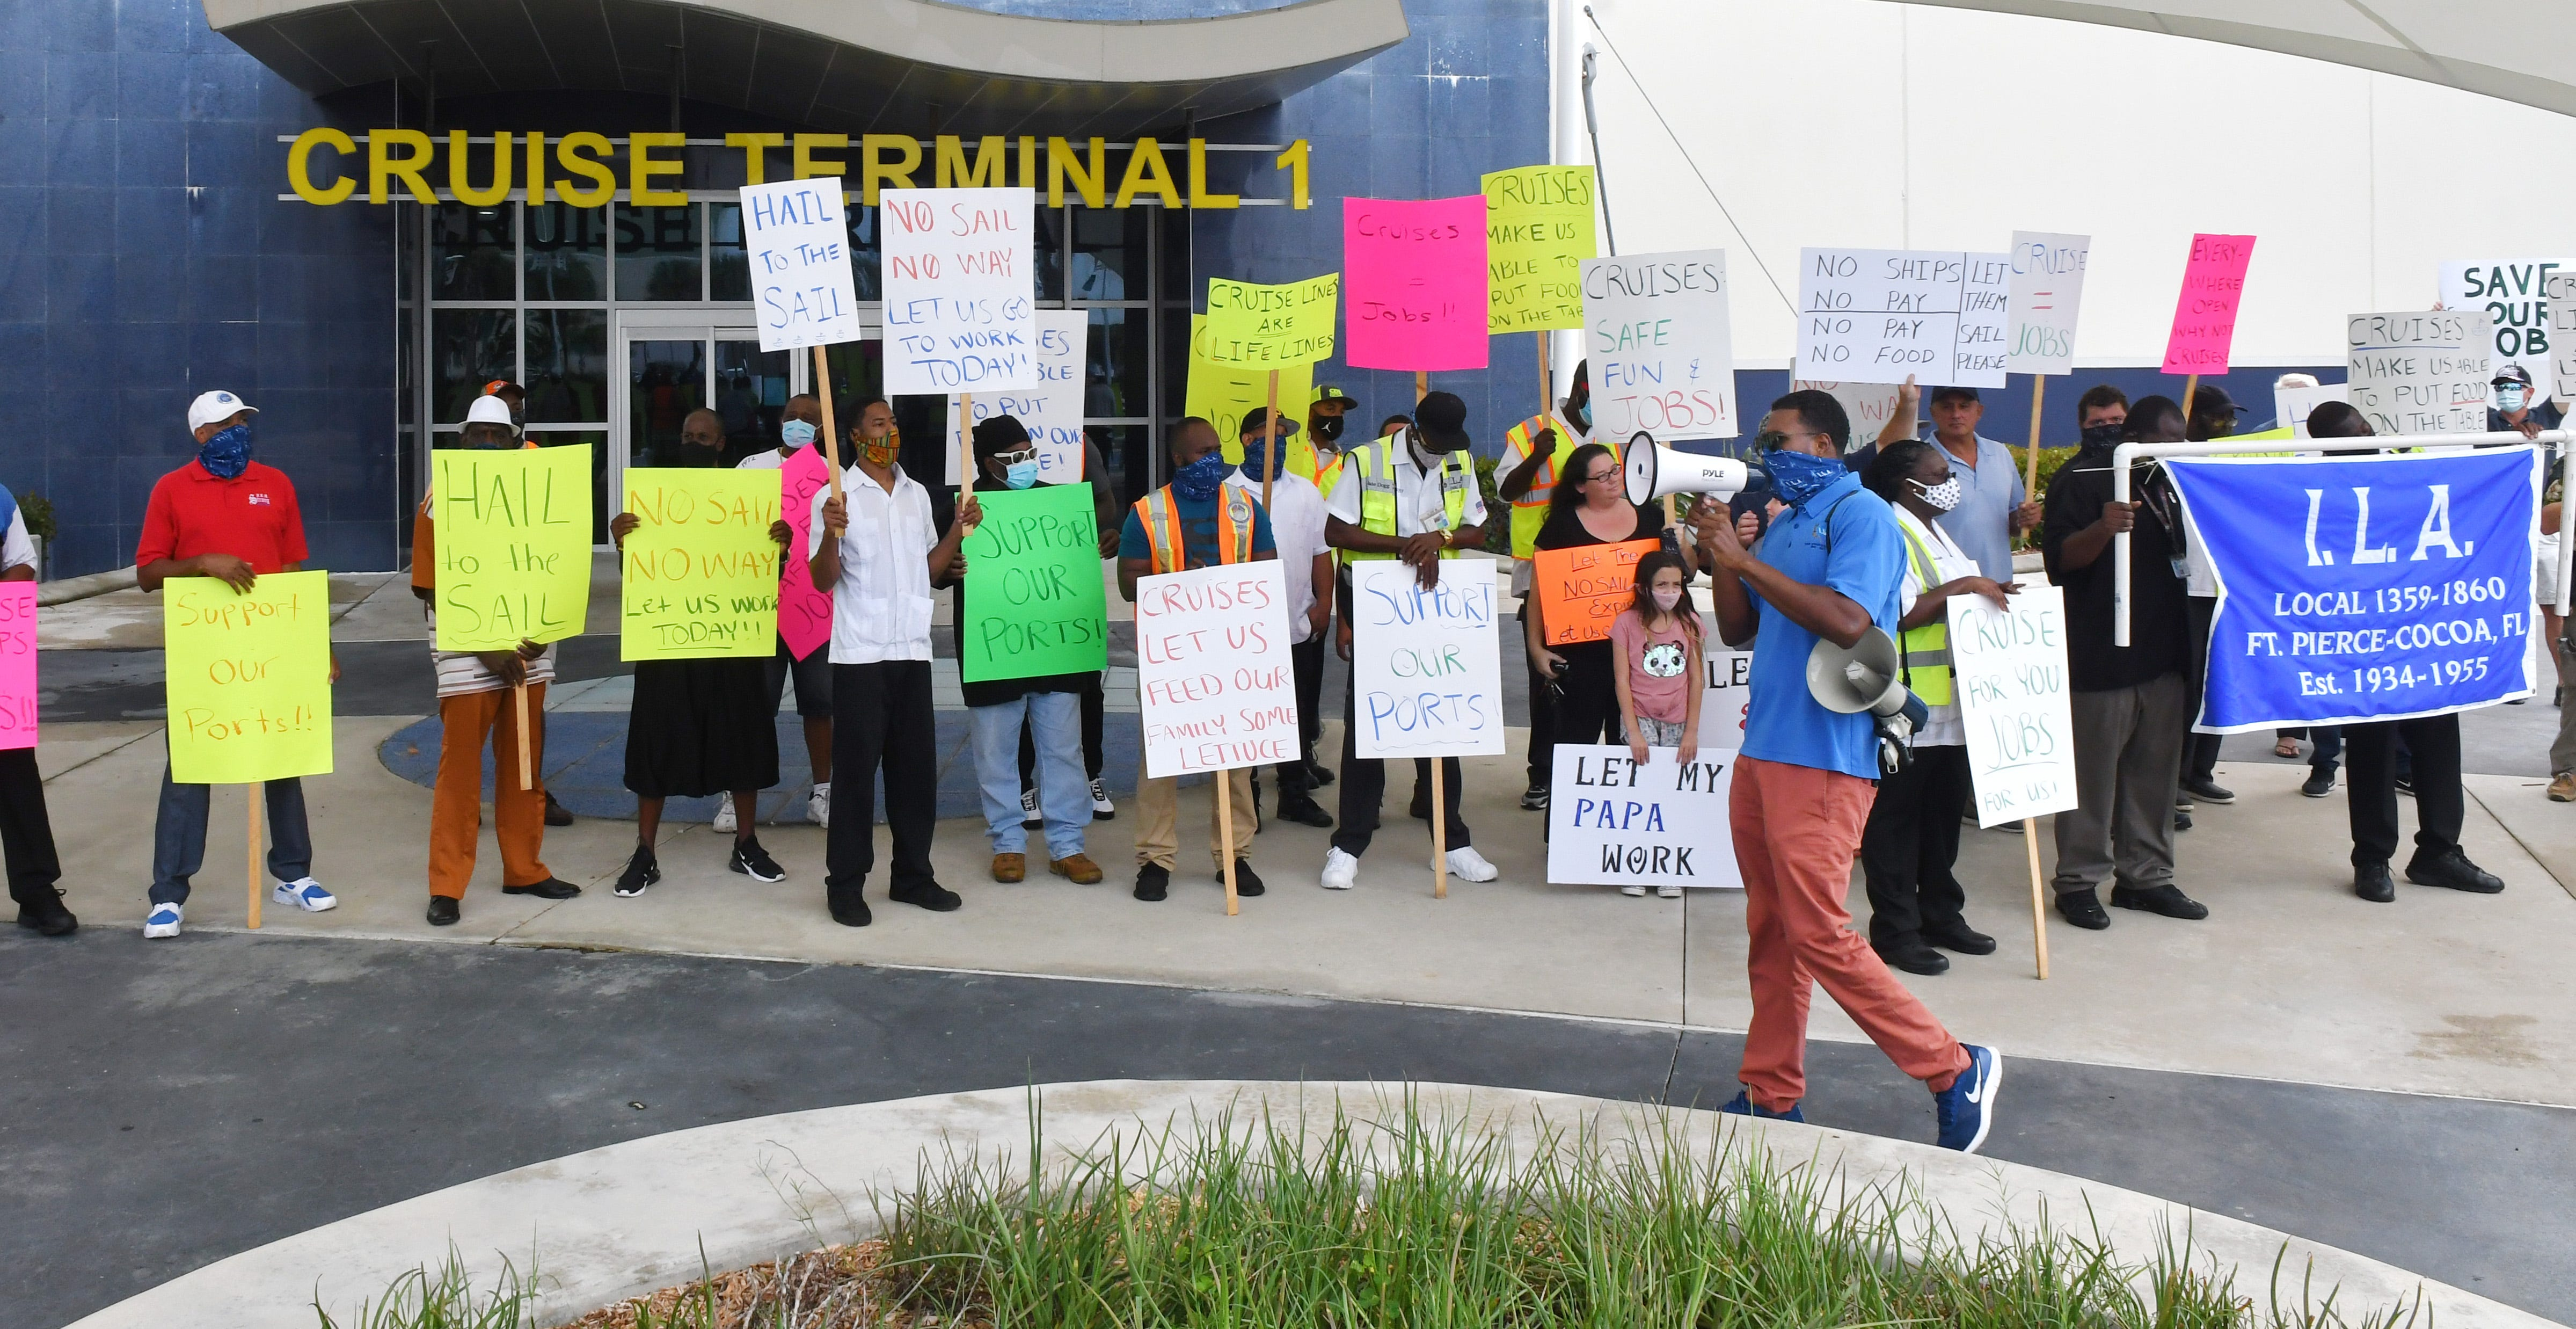 Port Canaveral rally pushes return to cruises by ending CDC 'no-sail' order